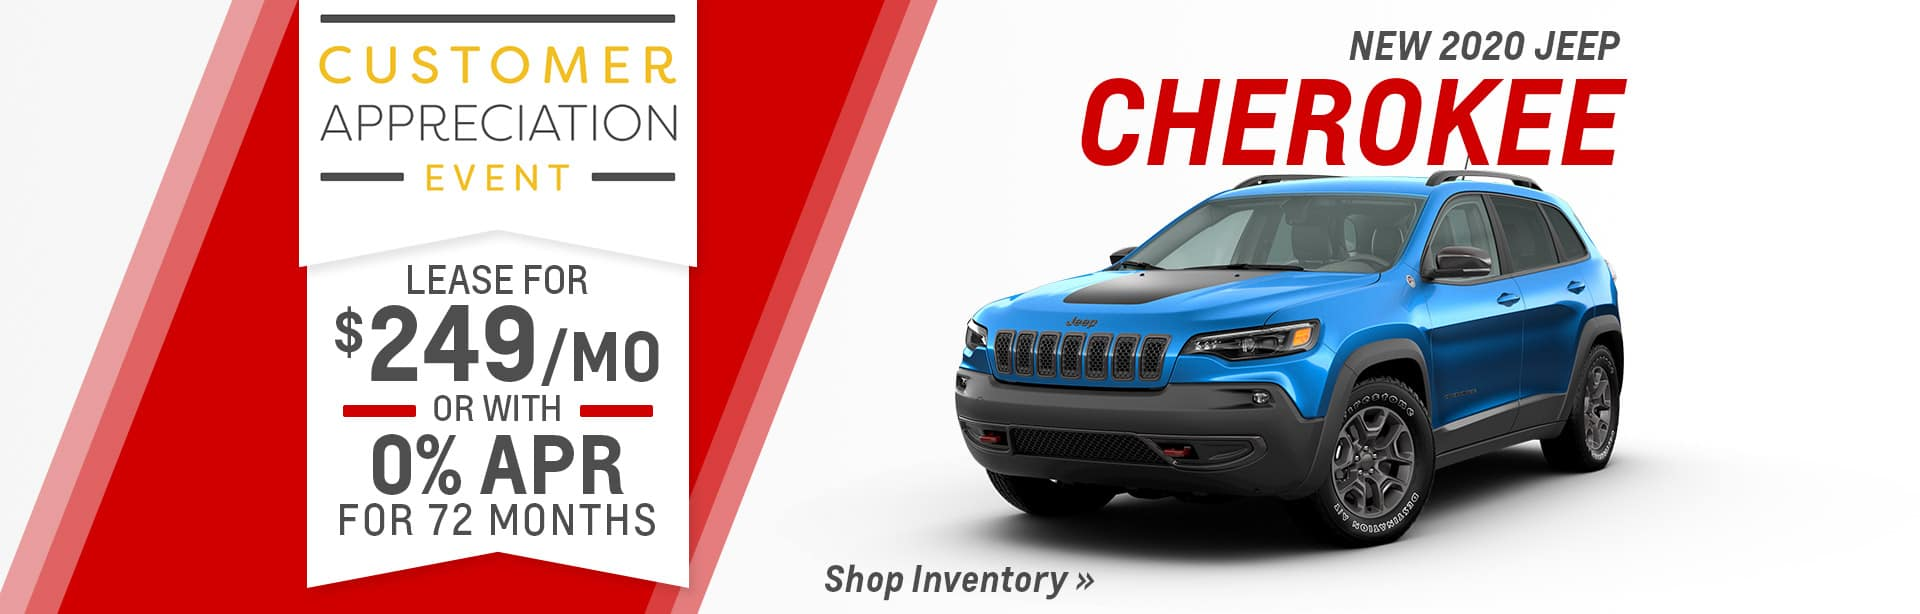 Lease a New Jeep Cherokee for $209 a month near Kendallville, Indiana